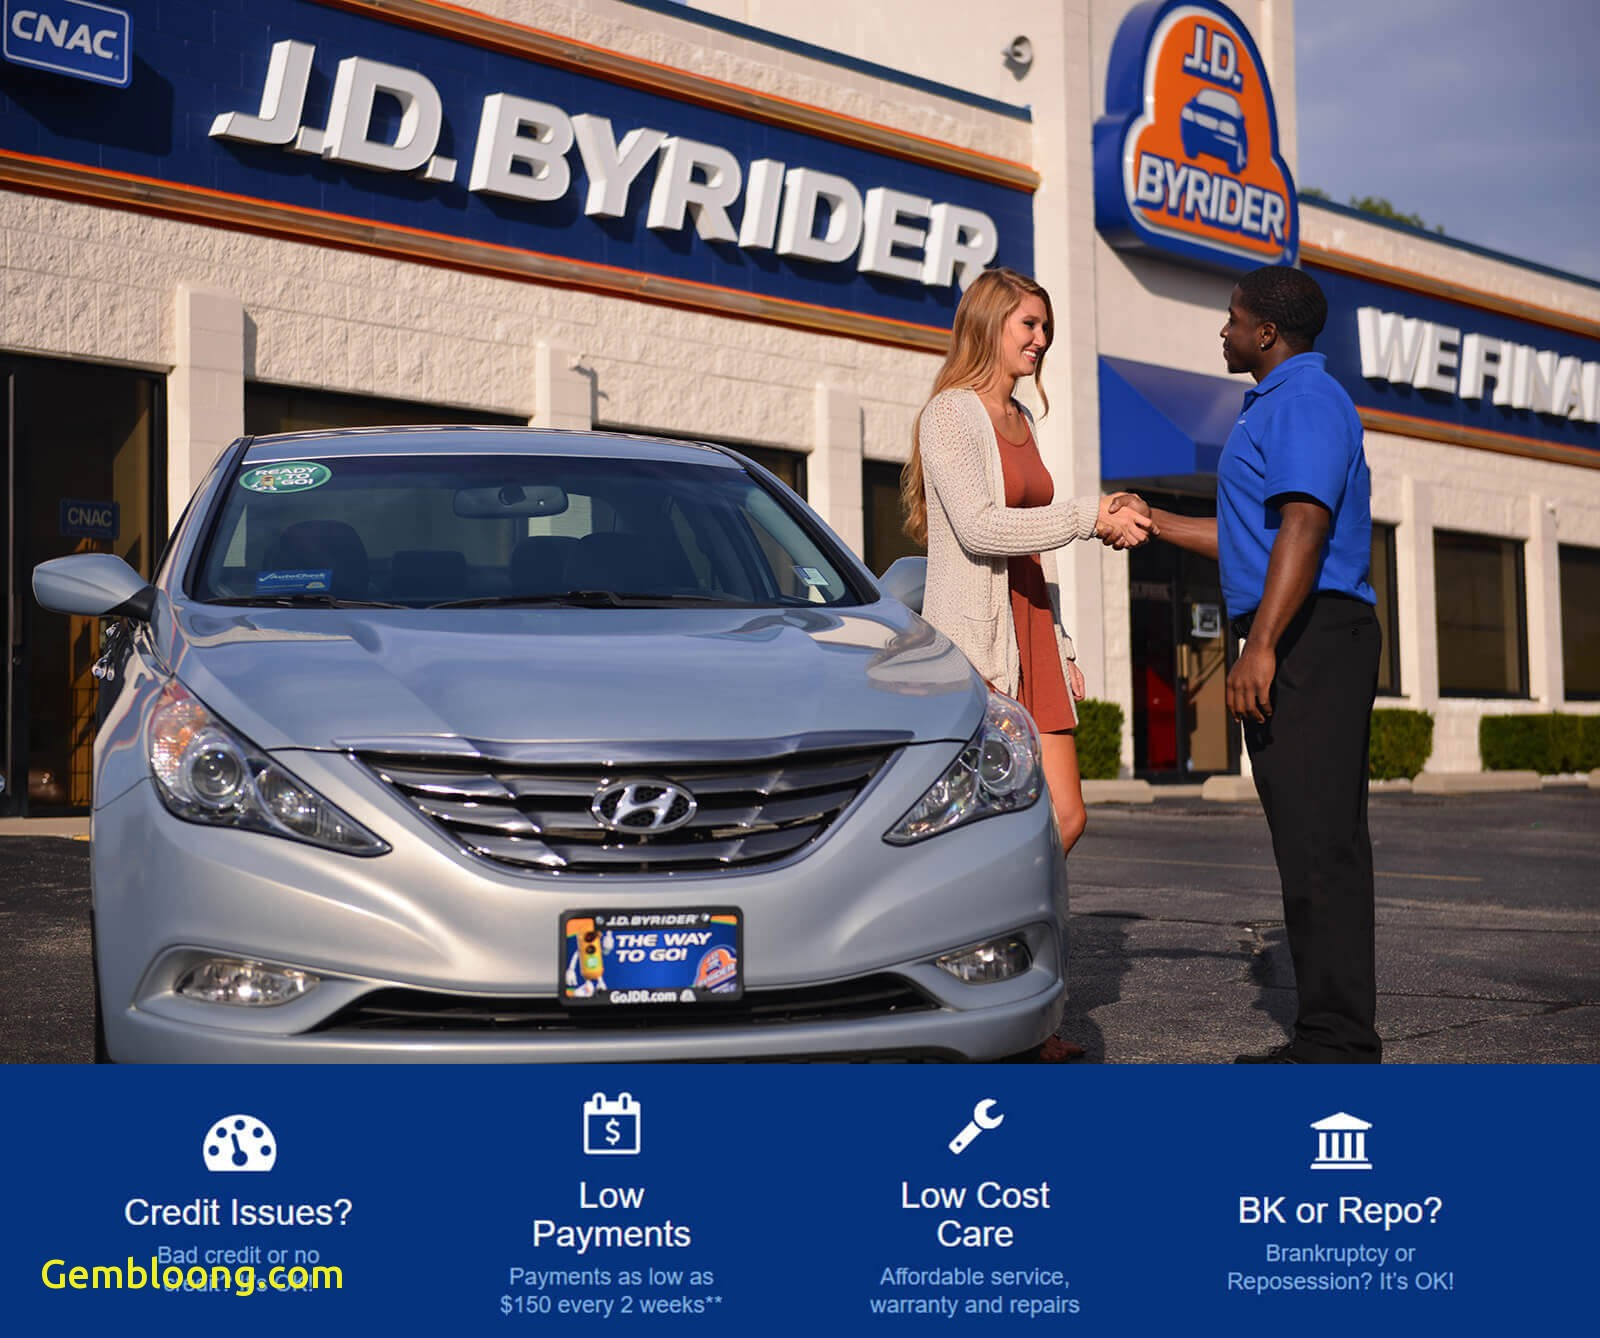 cars for sale near me low down payment luxury here pay here columbus oh